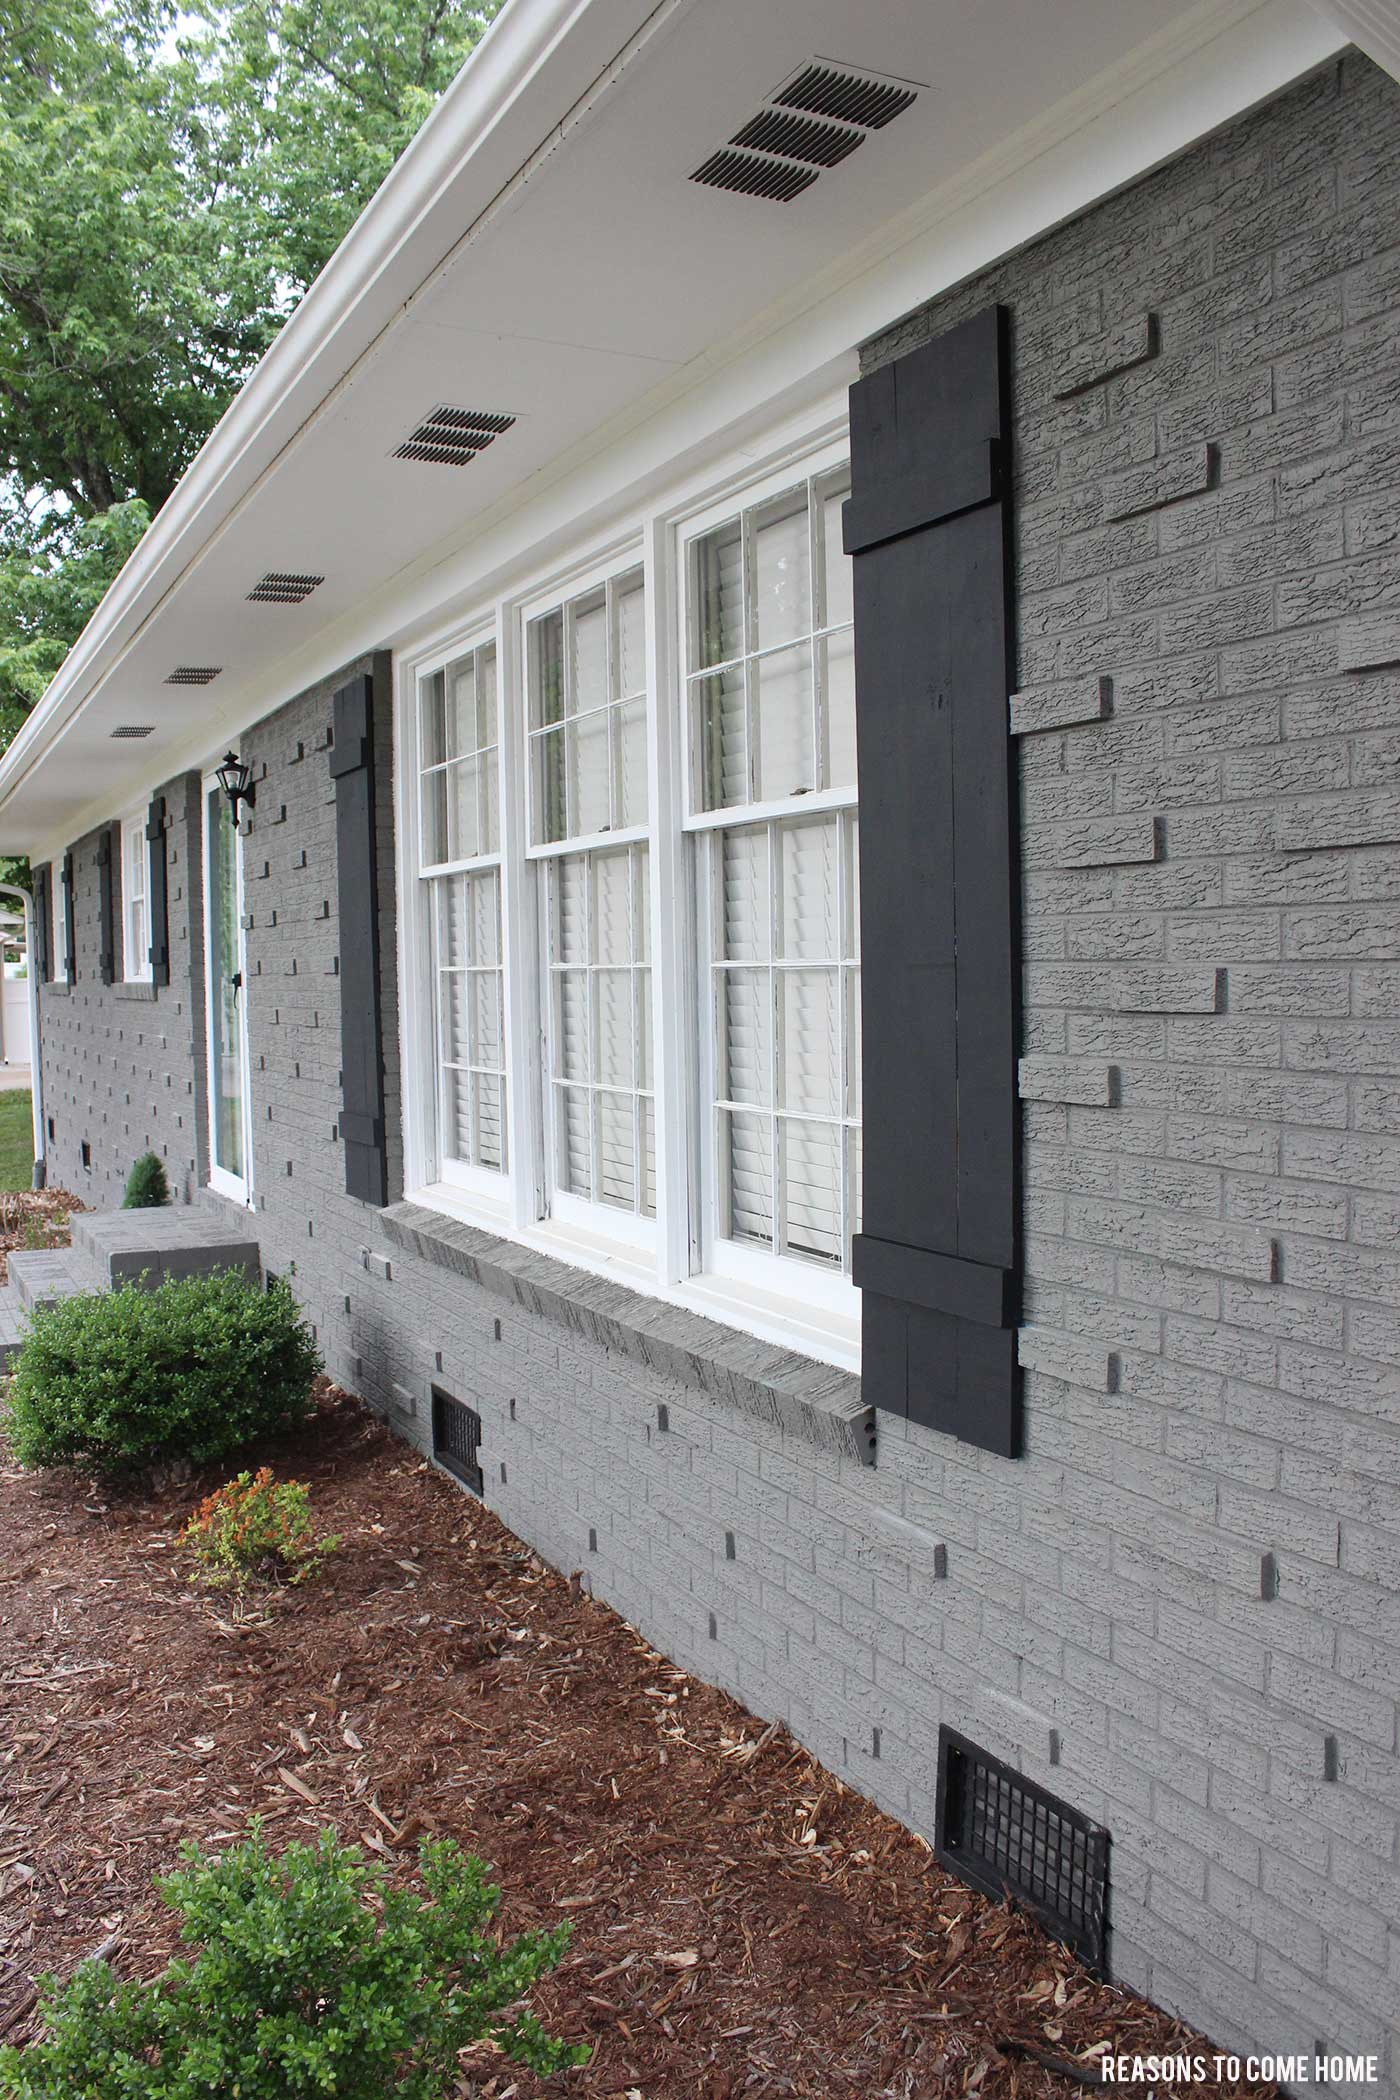 Diy board and batten shutters - Painting brickwork exterior ideas ...